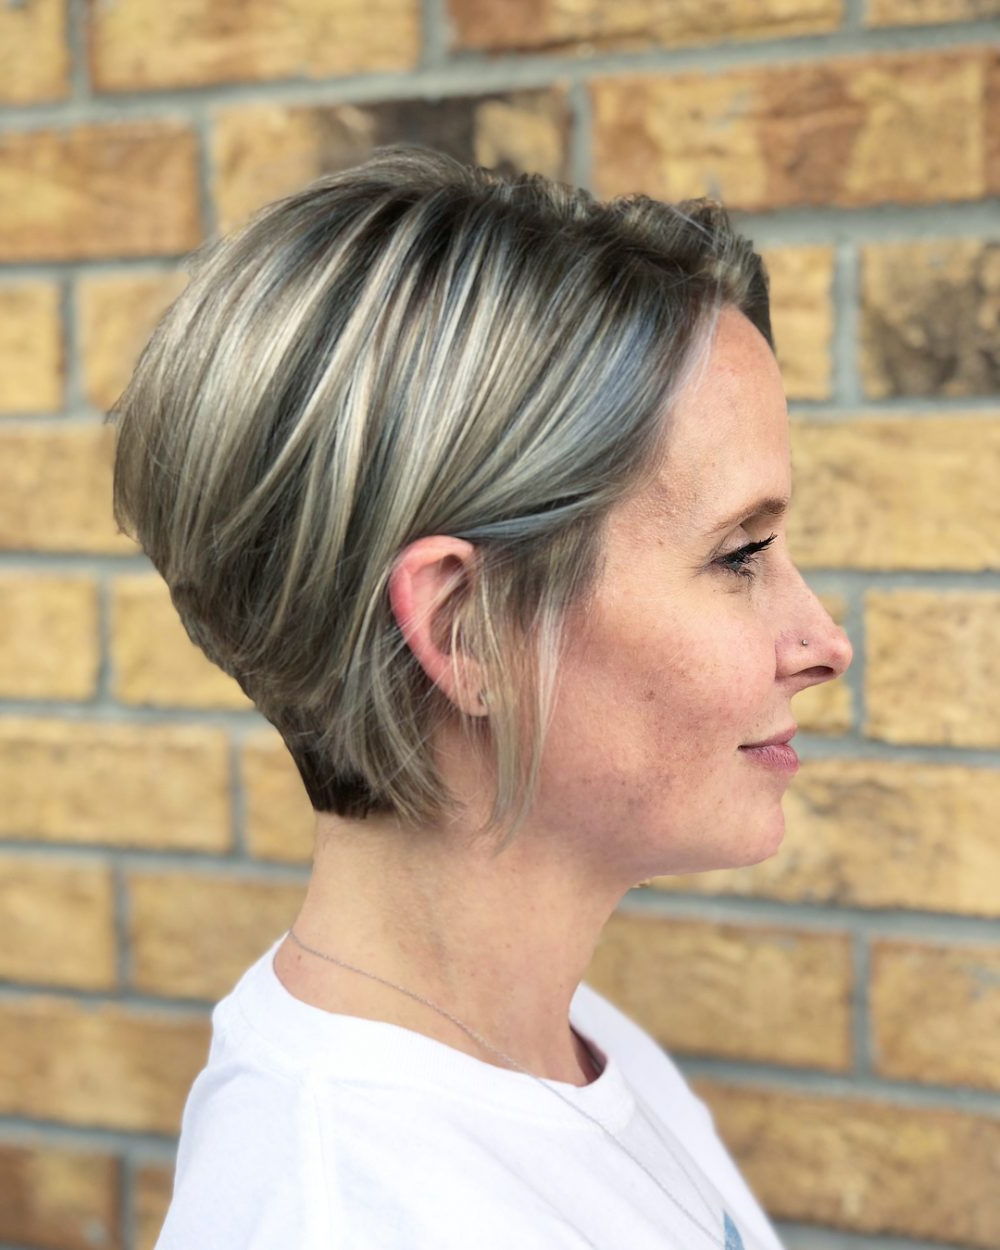 42 Sexiest Short Hairstyles For Women Over 40 In 2018 For Short Funky Hairstyles For Over  (View 2 of 25)